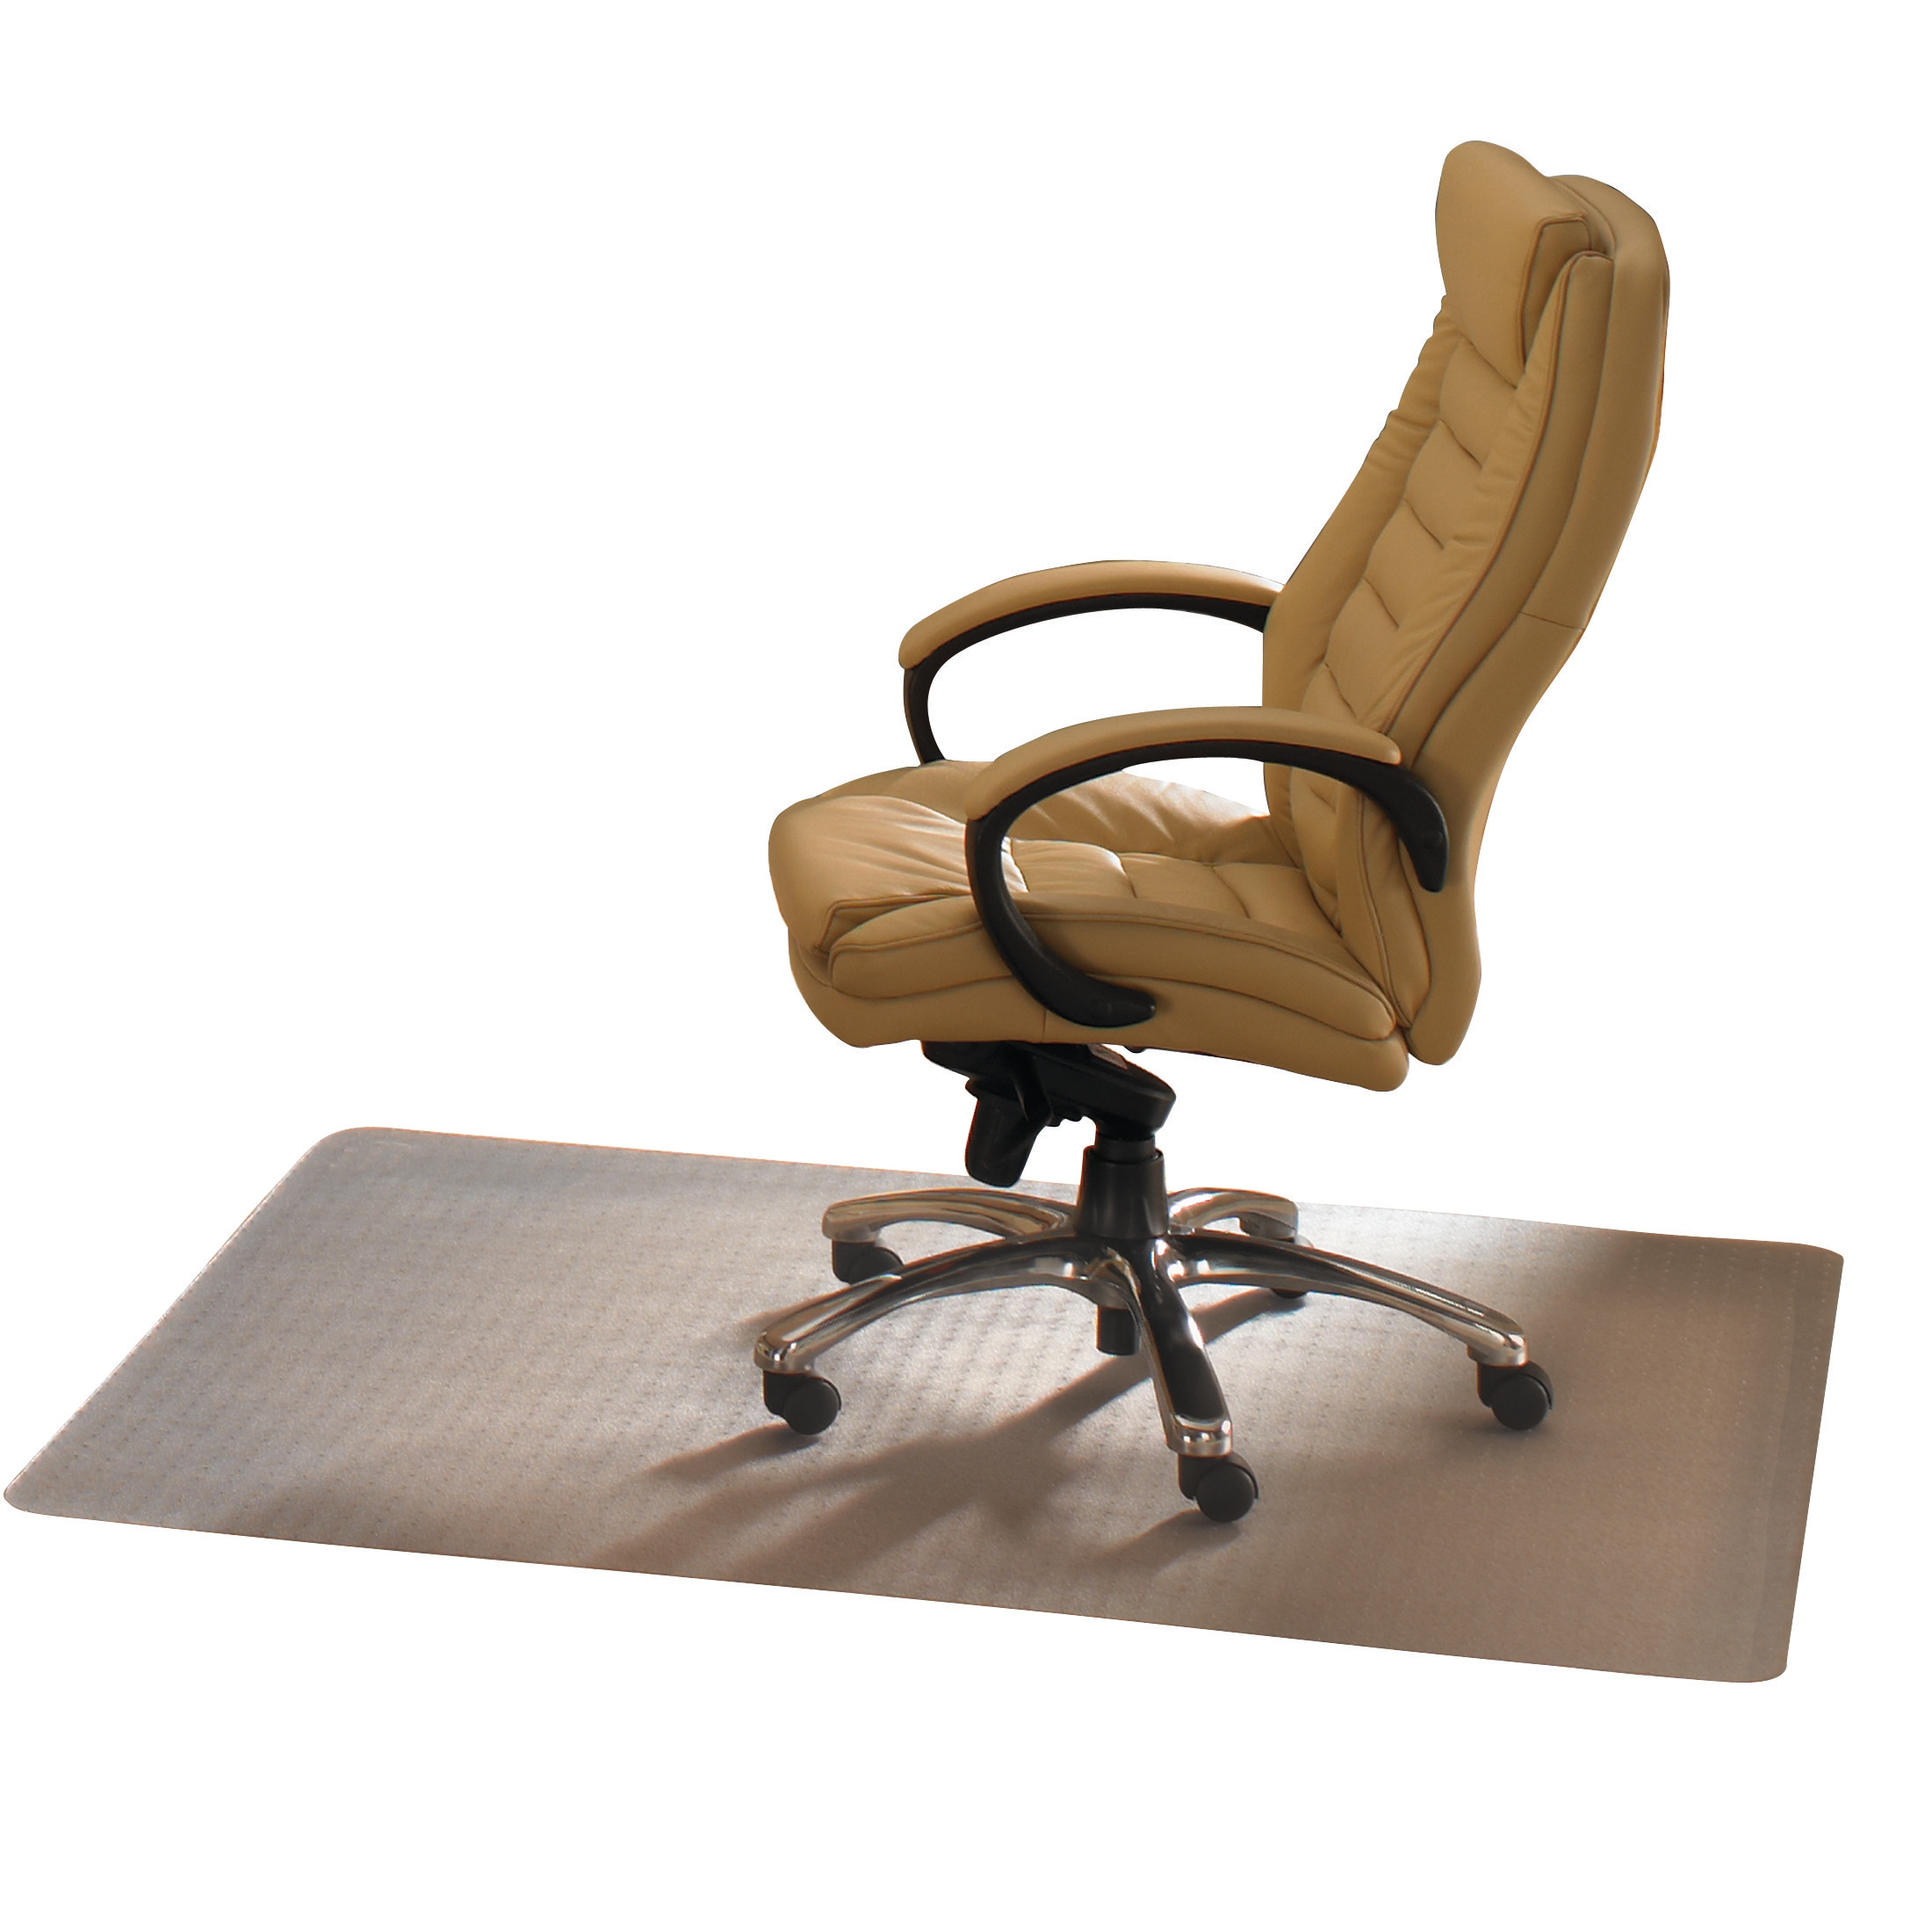 Image for Cleartex Advantagemat Chair Mat For Carpet Protection 1200x1500mm Clear Ref FCVPF1115225EV